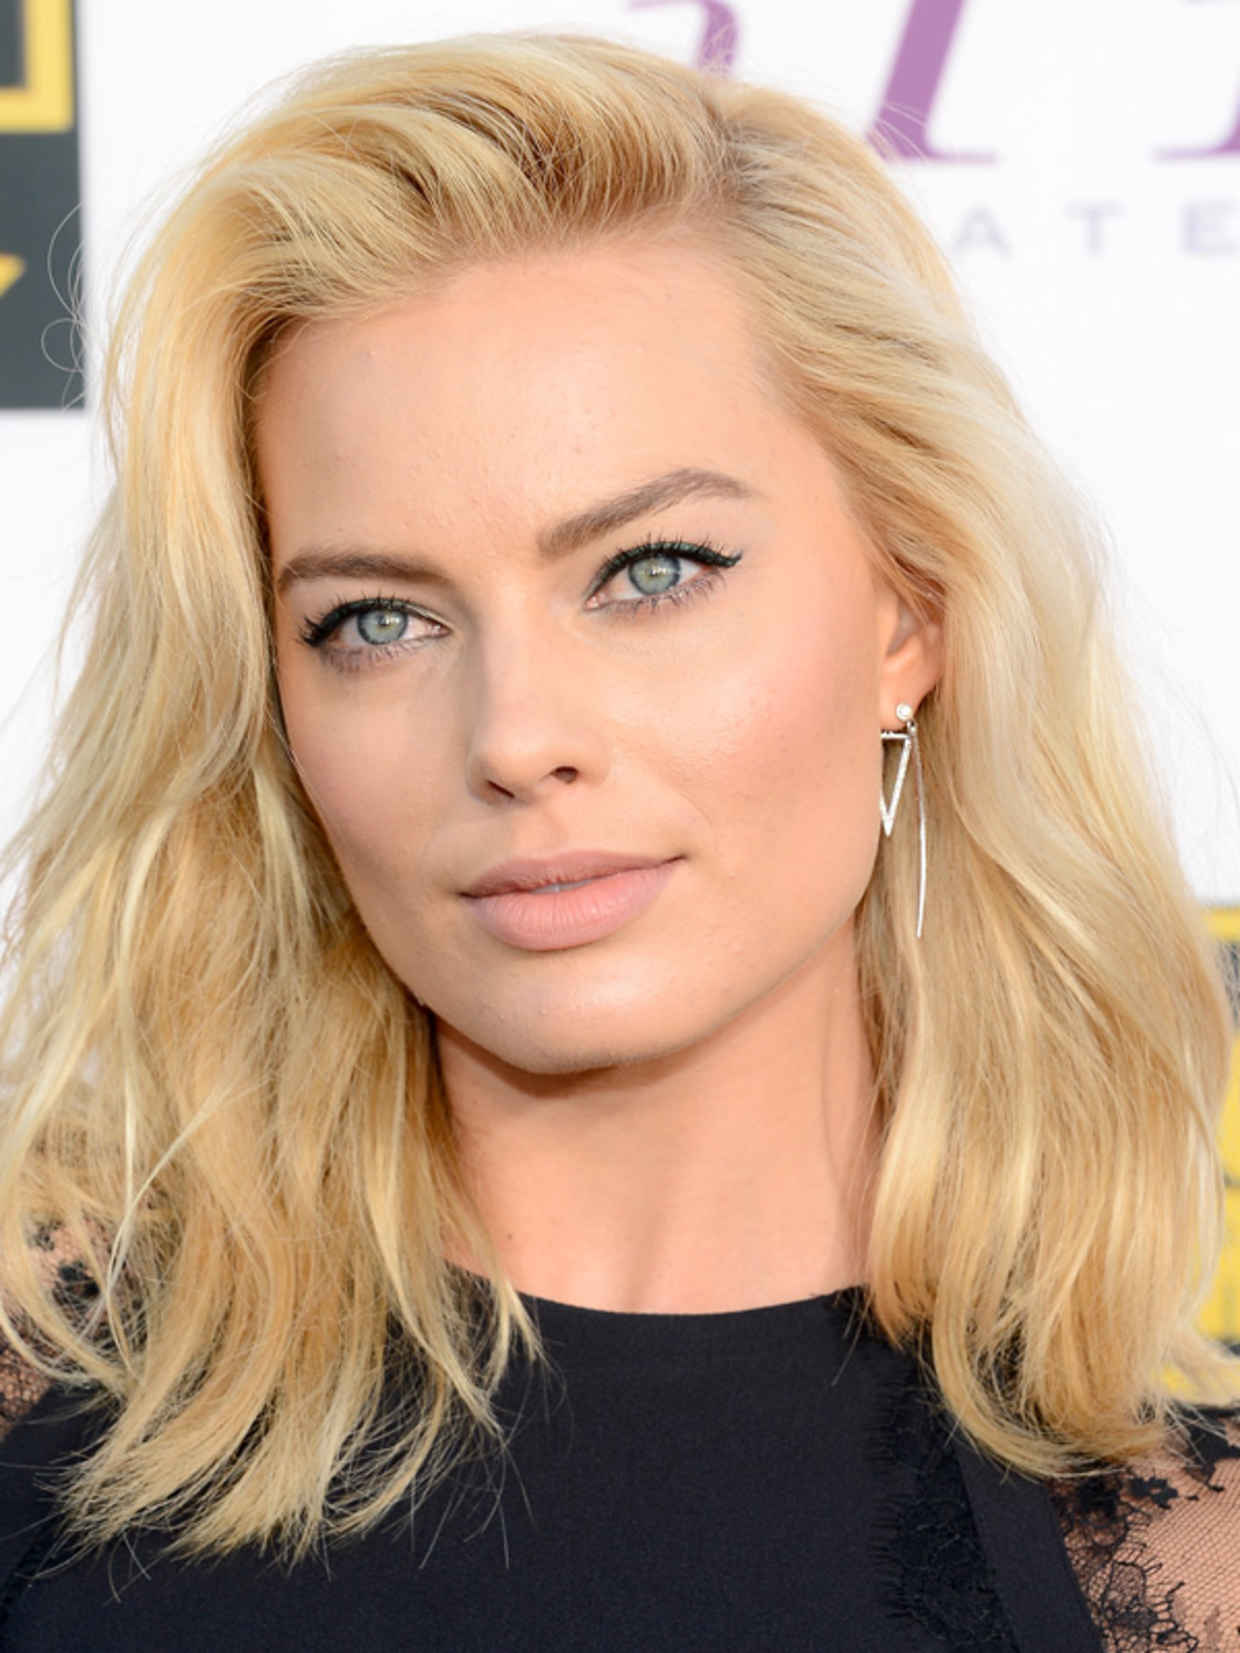 Margot Robbie's Sexy Medium Wavy Hairstyle at the 2014 Critics' Choice Awards